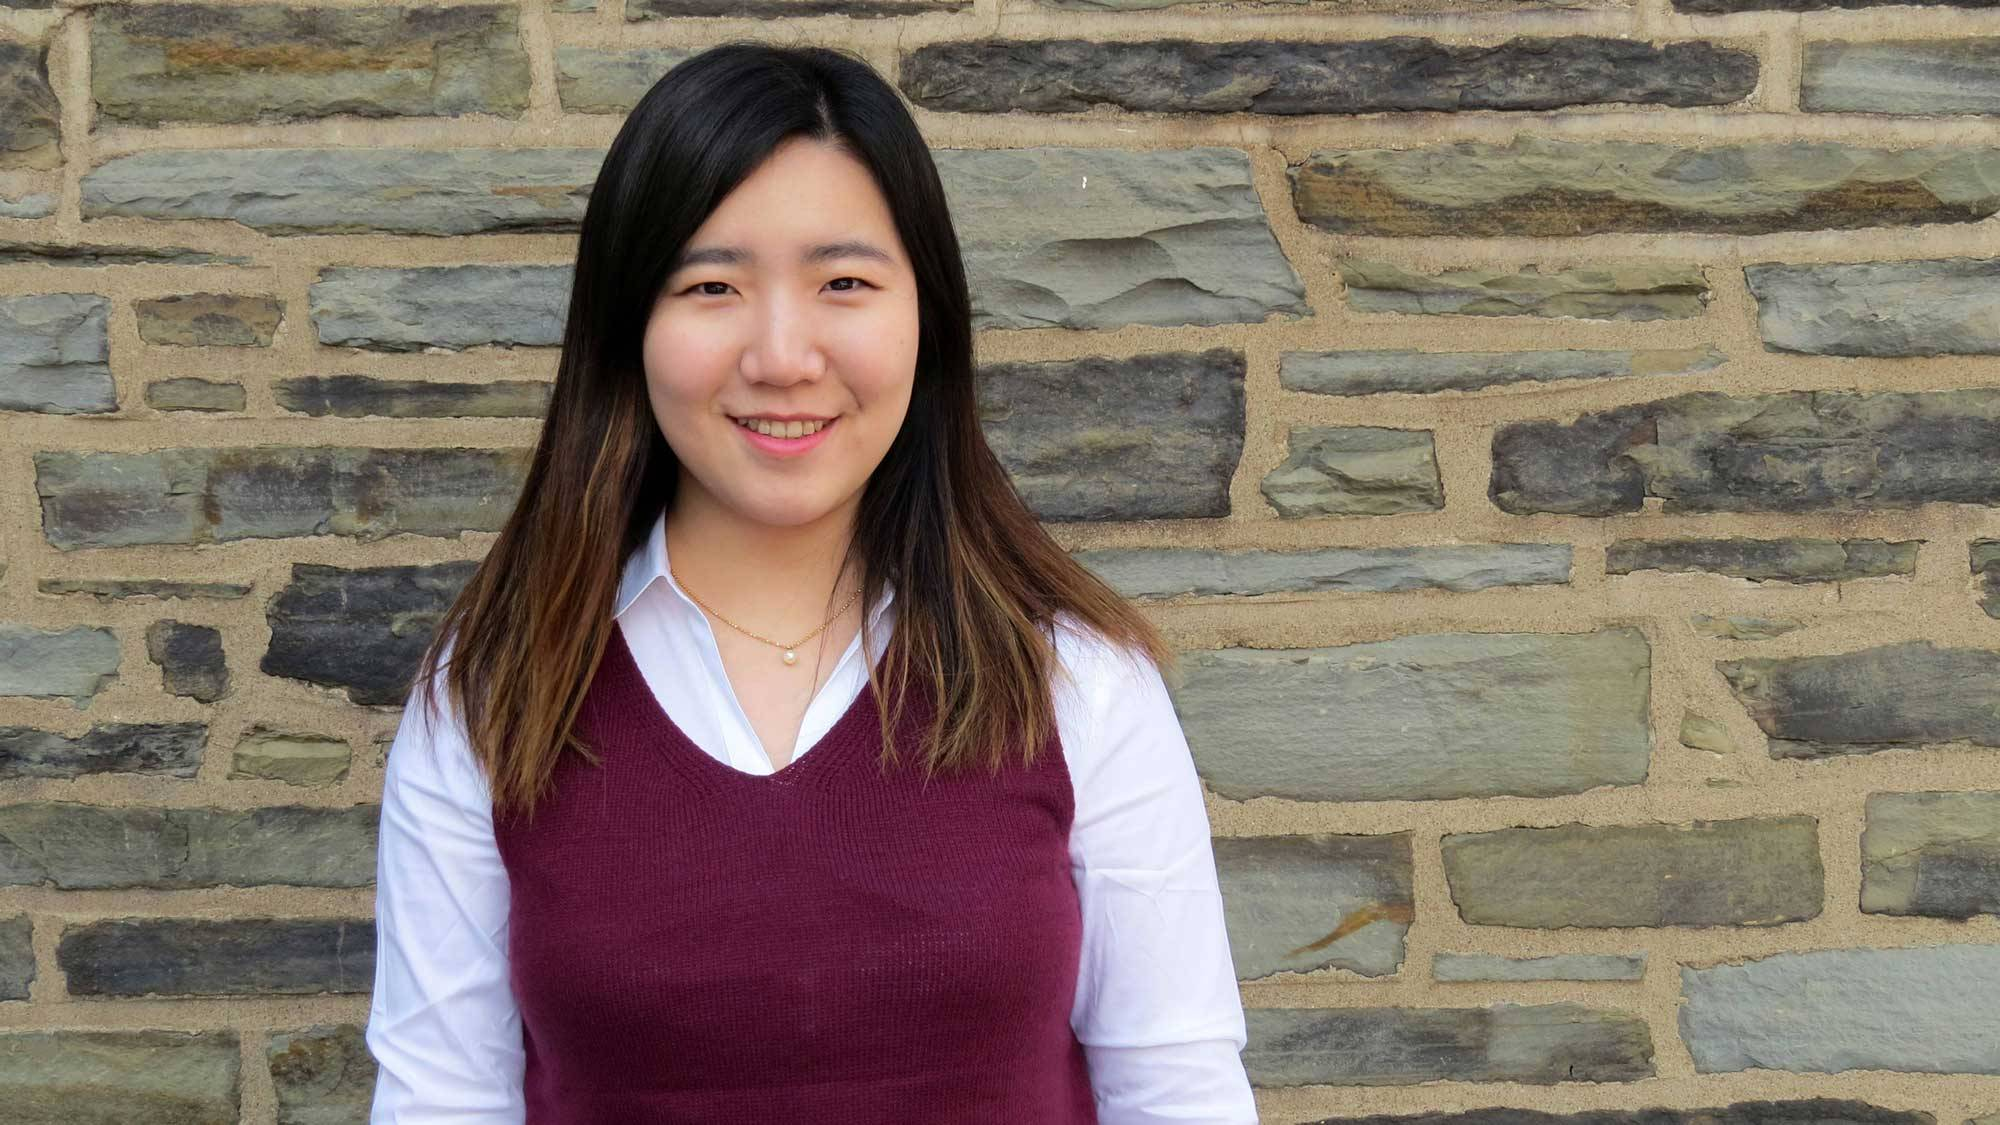 Watson Fellowship winner Minjoo Kim '20 in front of a stone wall